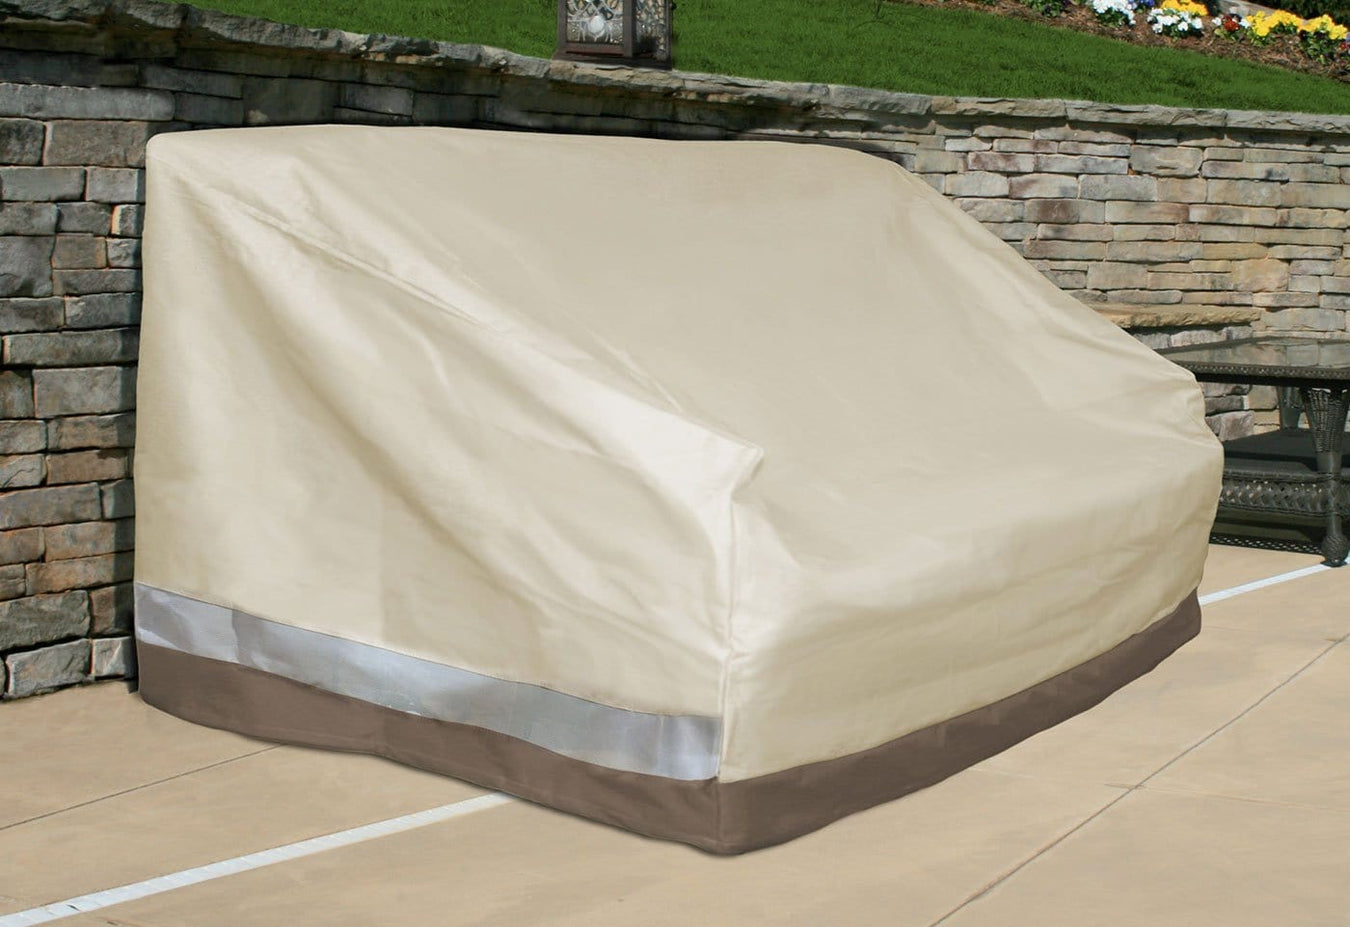 Patio Armor Bench Outdoor Furniture Cover